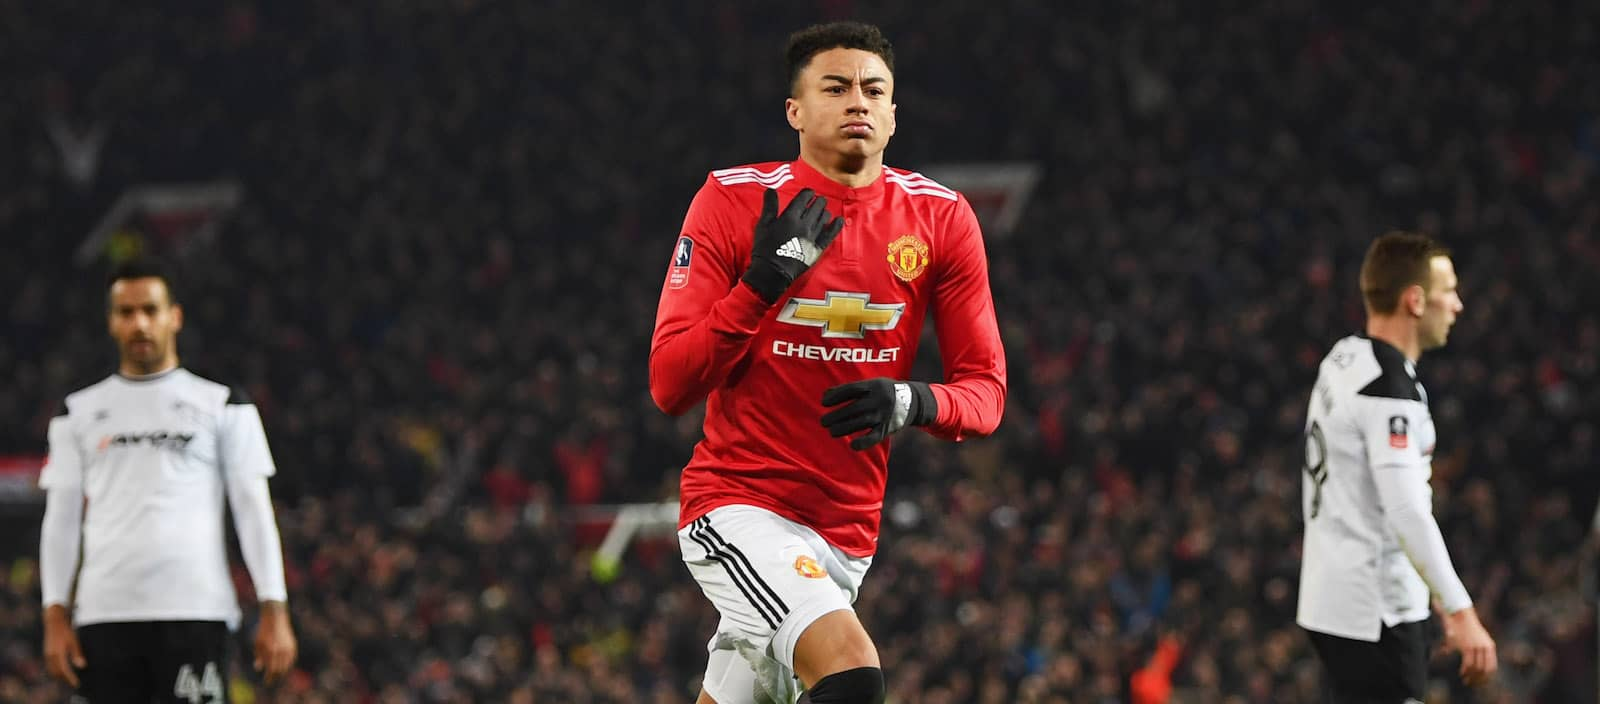 Jesse Lingard continues world class form to save the day for Manchester United against Derby County